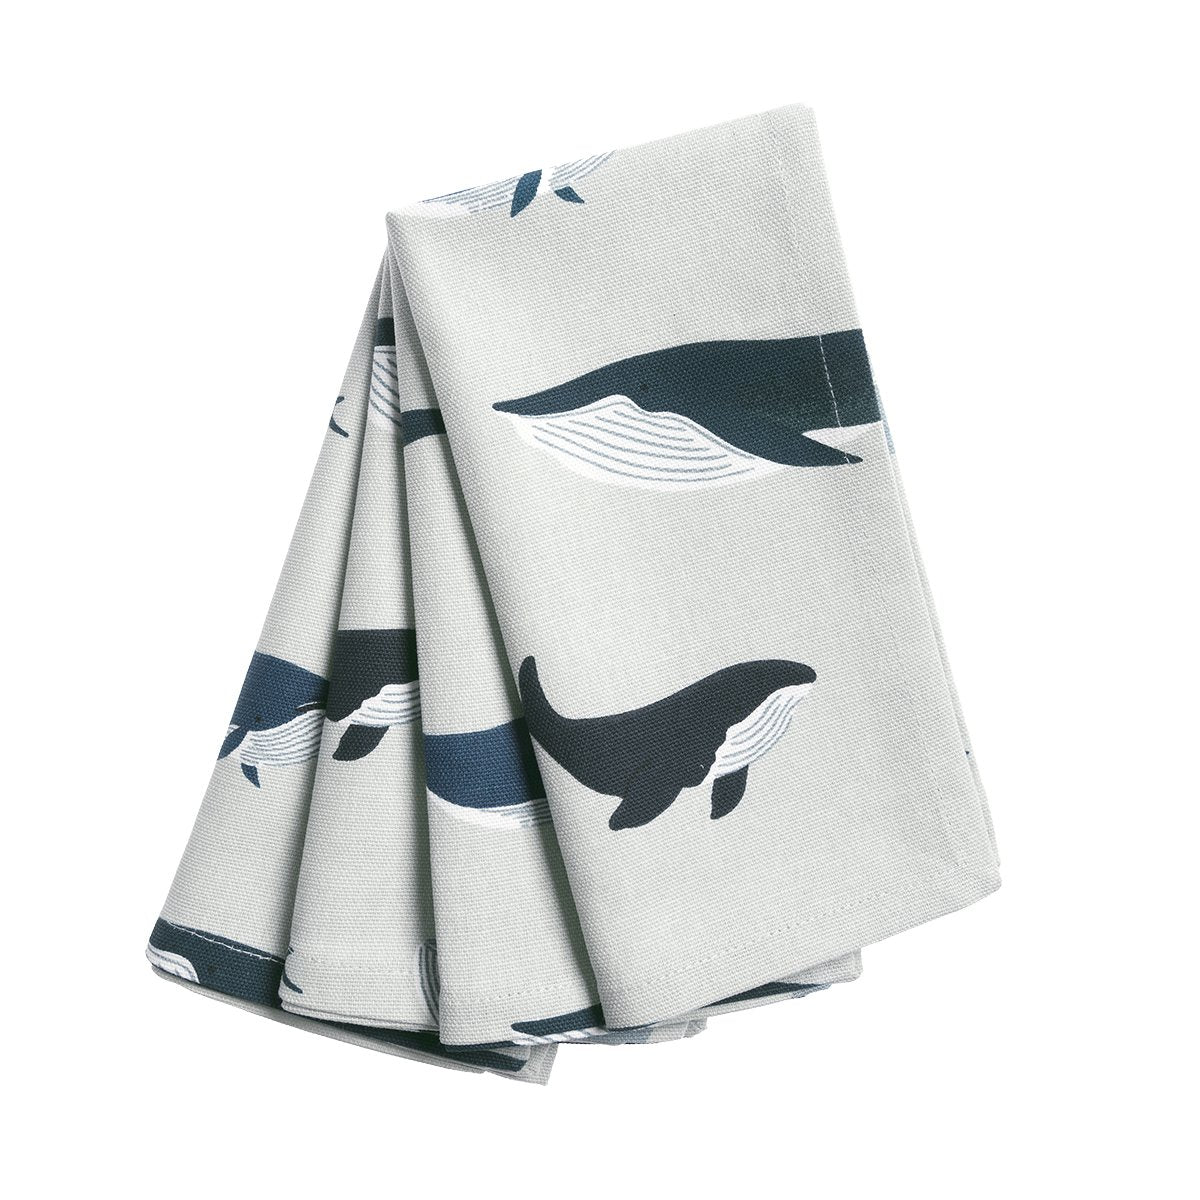 Whales Fabric Napkins (Set of 4) by Sophie Allport